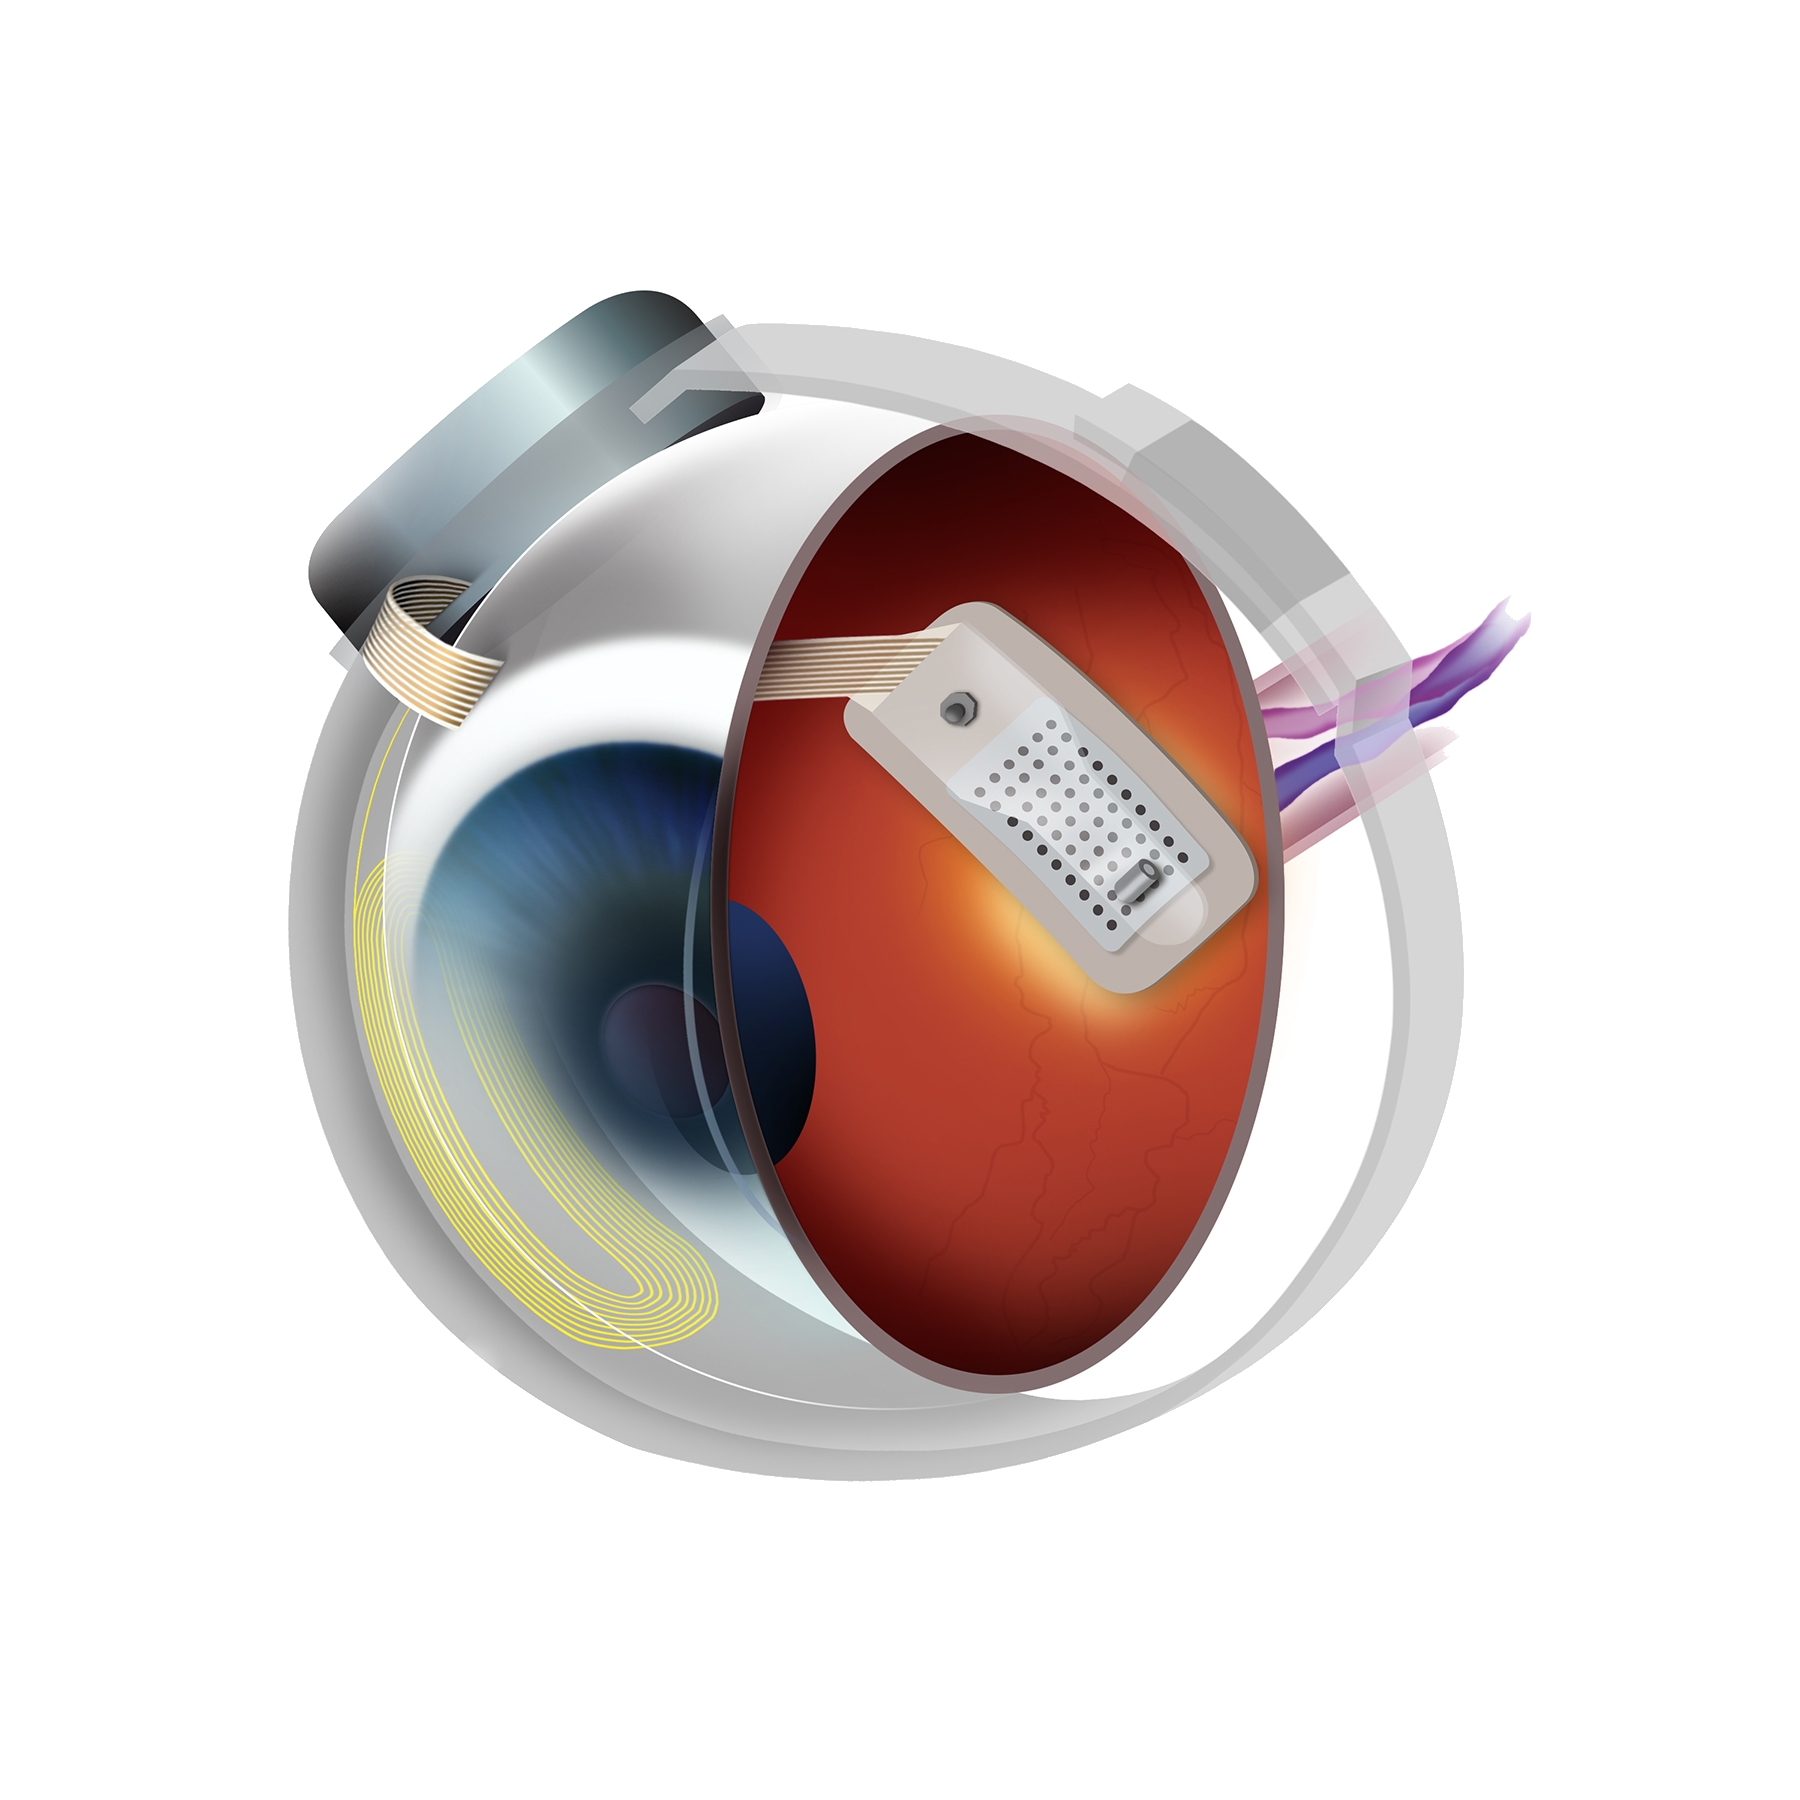 Illustration of bionic eye surgery